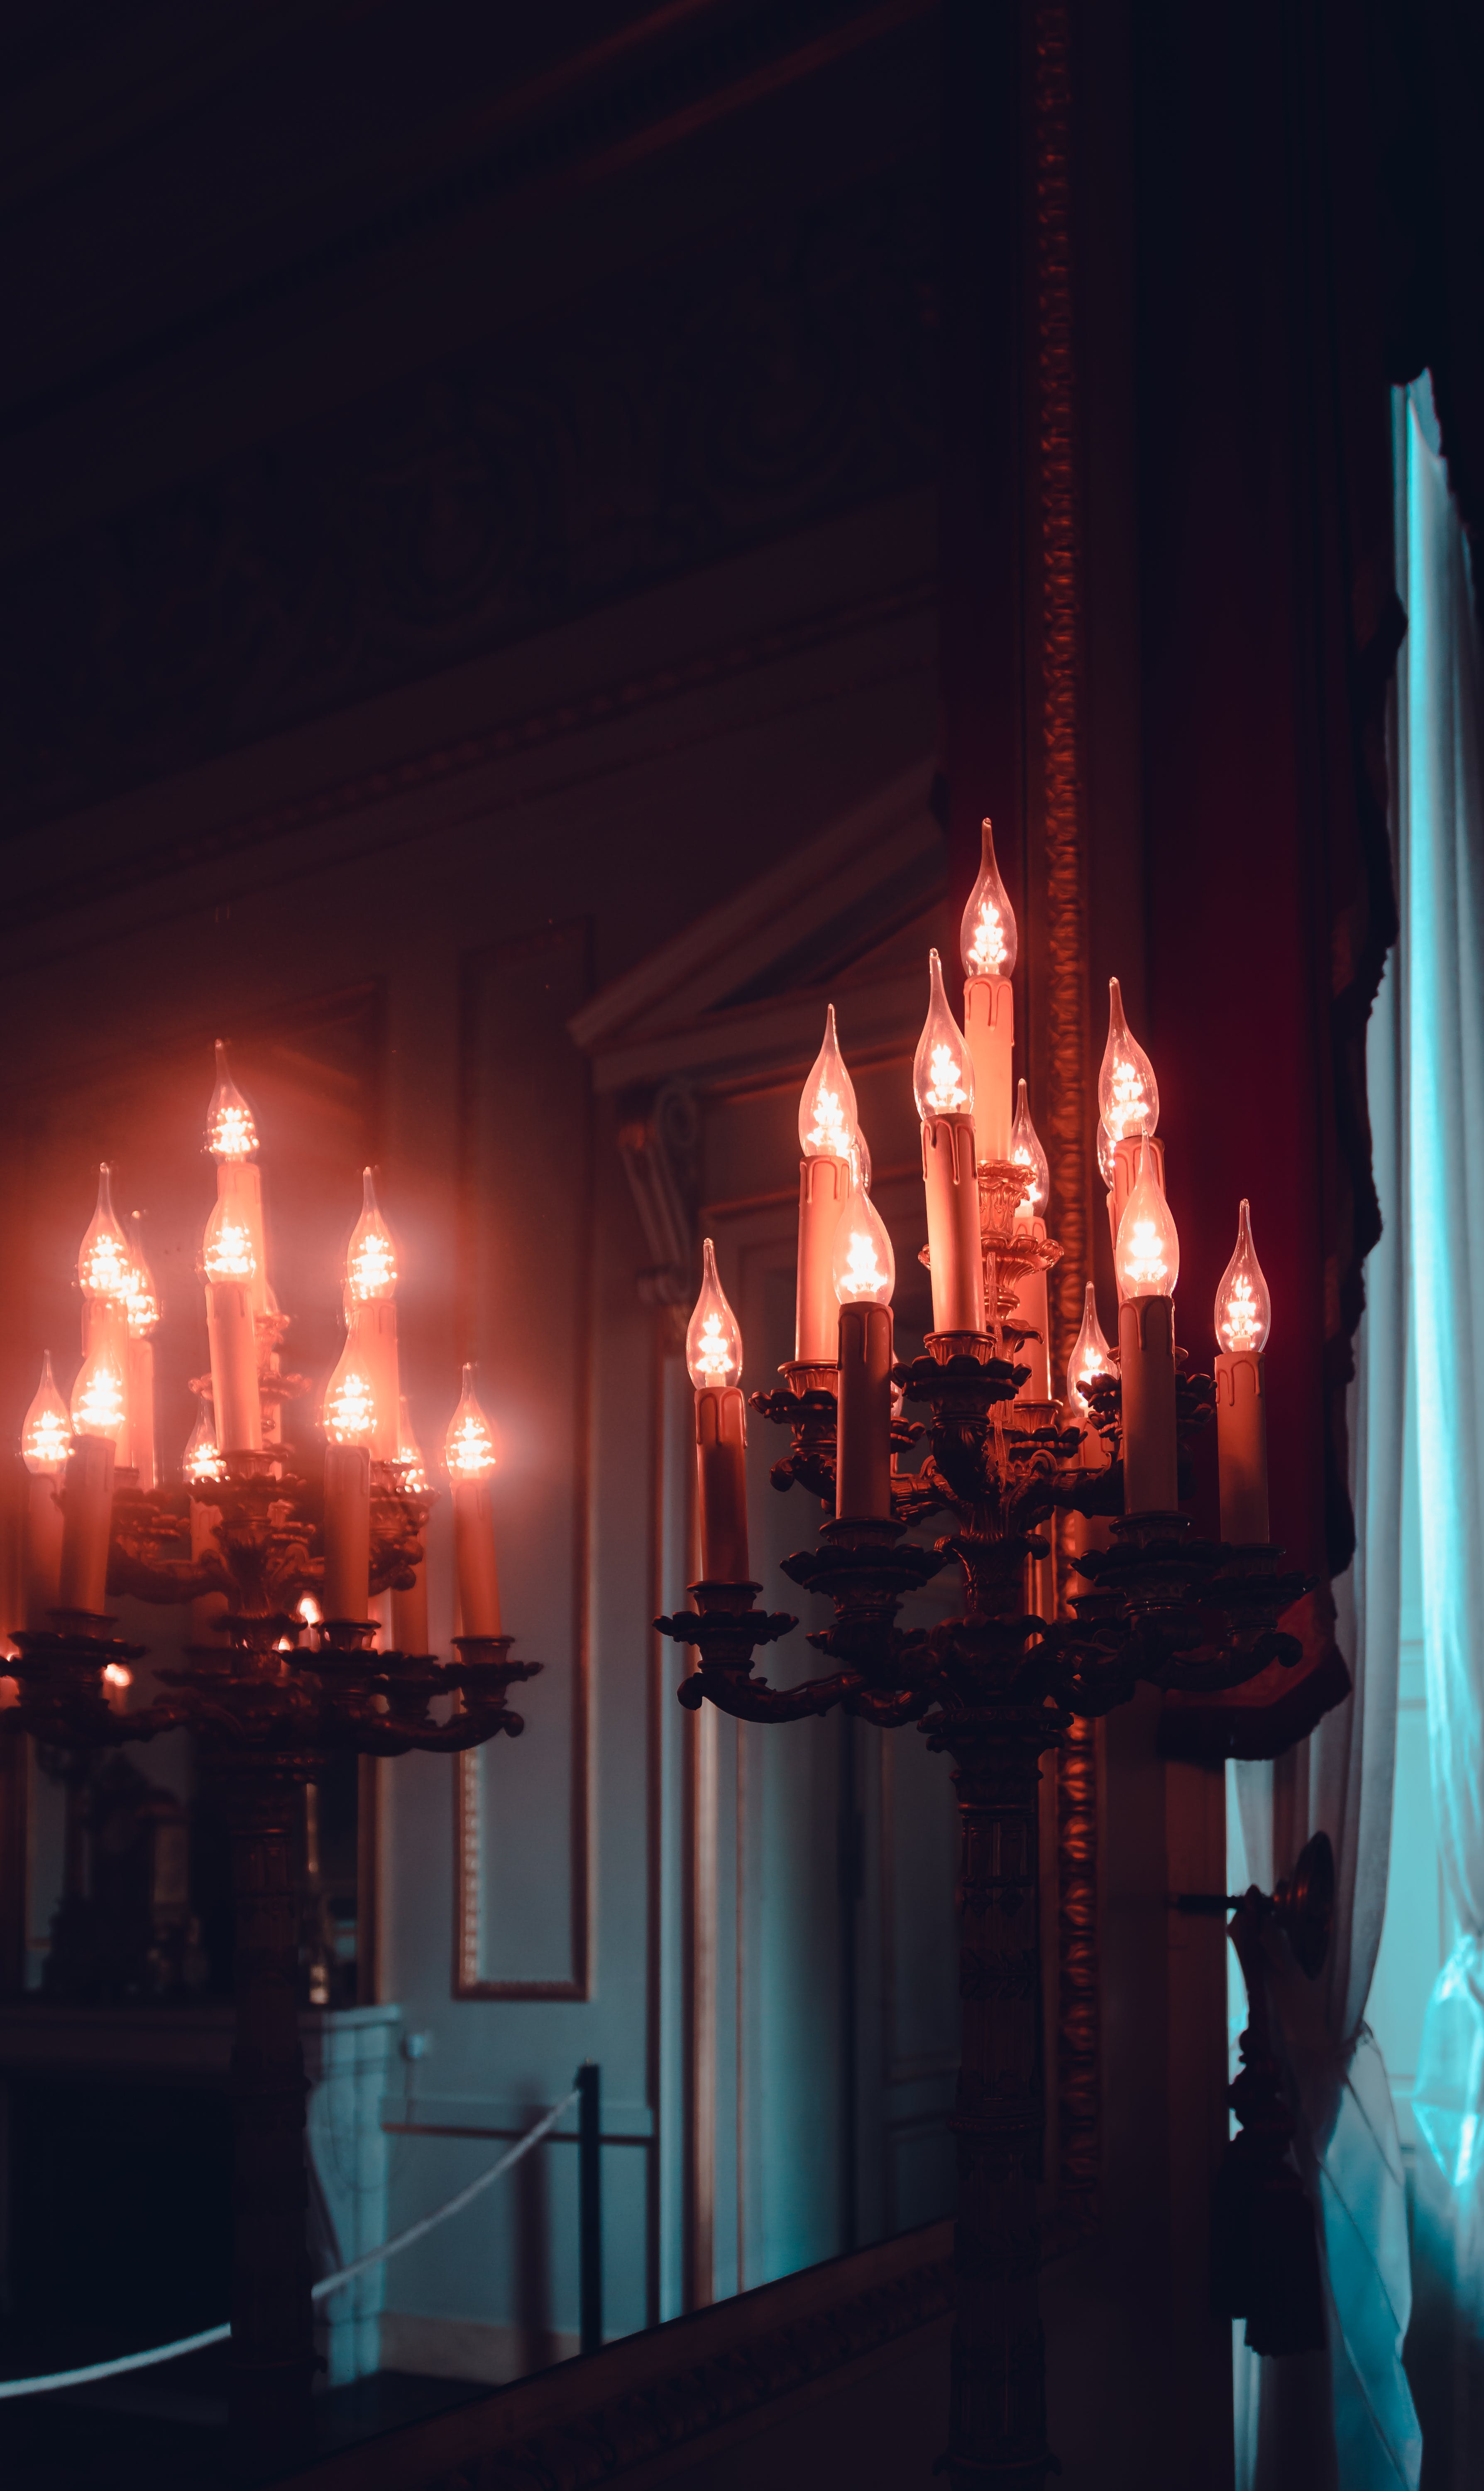 Free stock photo of candle, light and shadow, light reflections, reflection